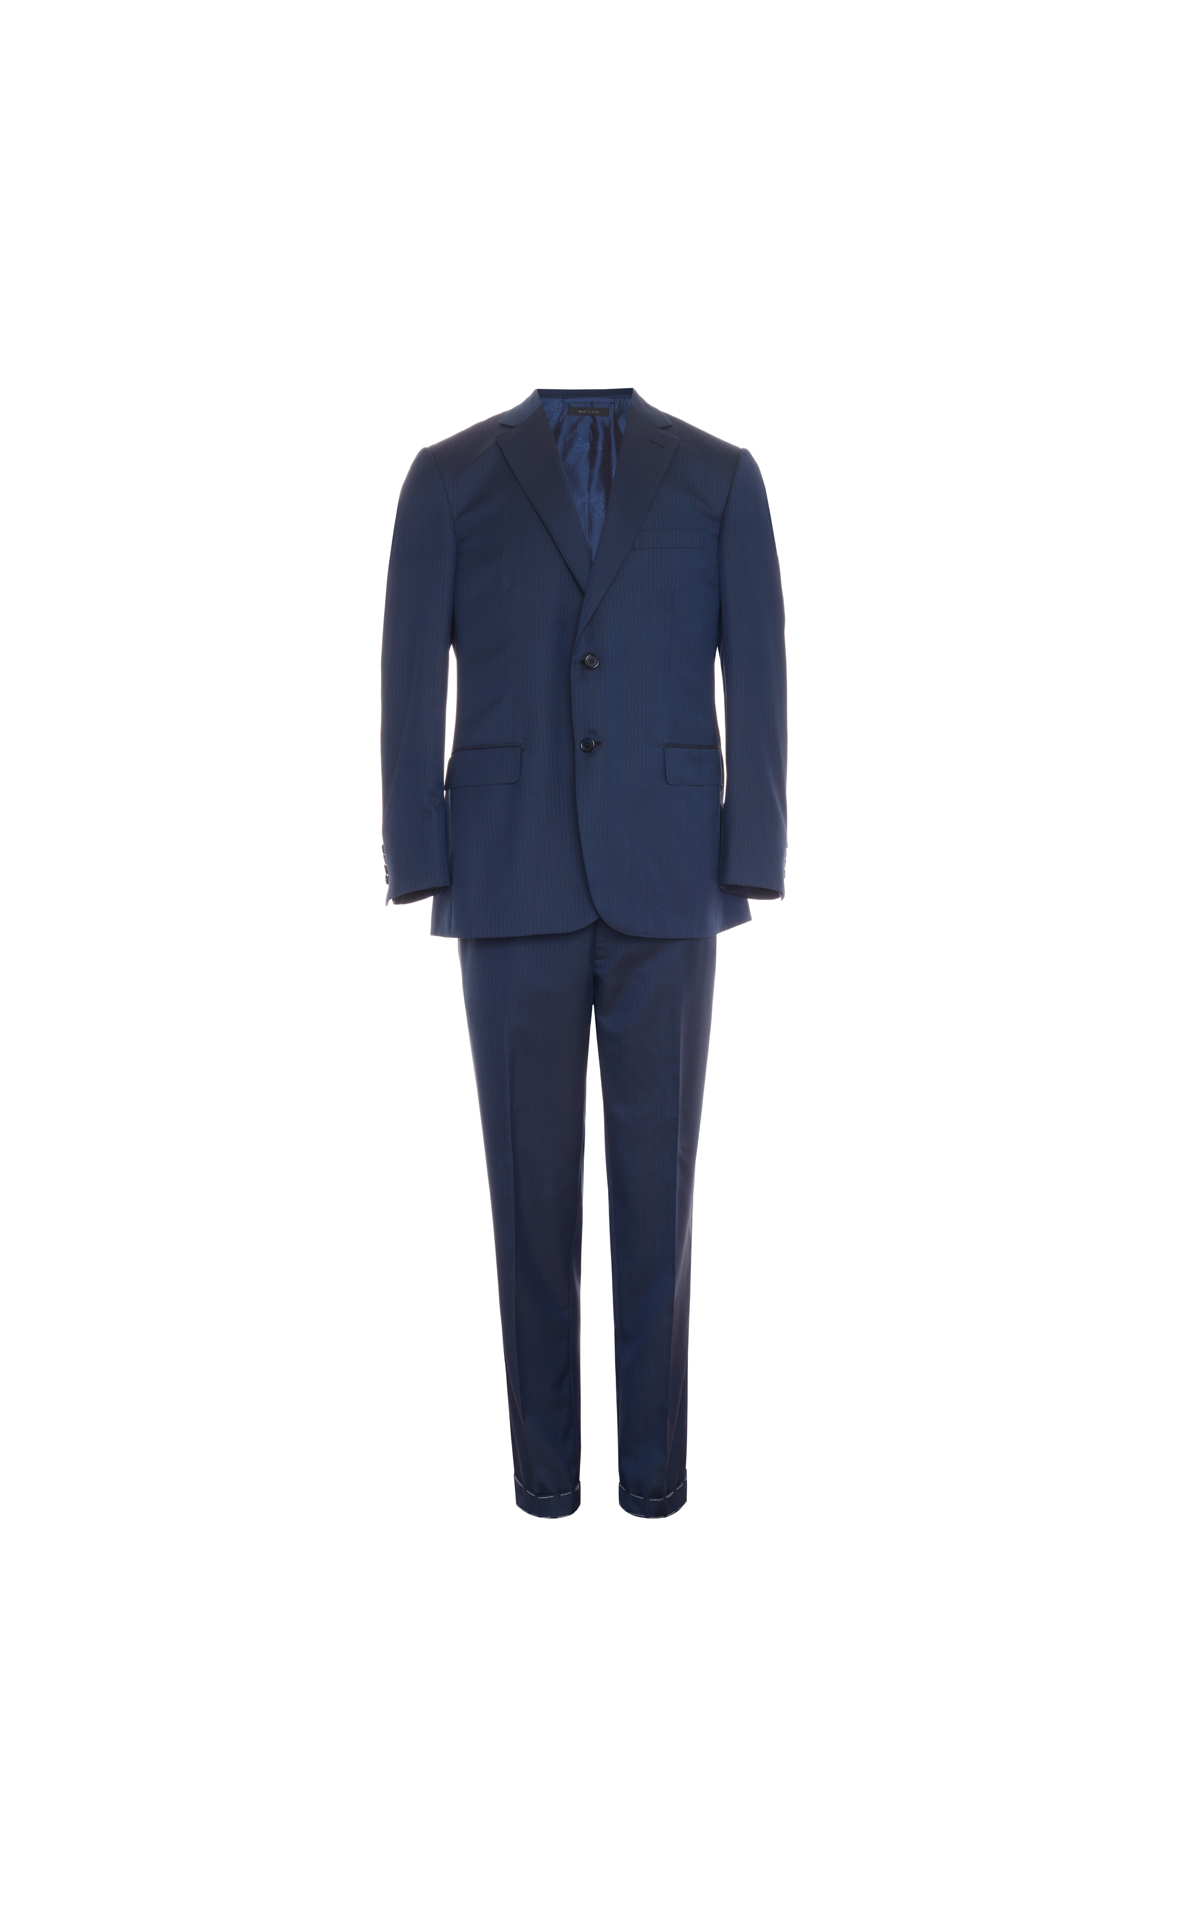 Brioni Suit from Bicester Village